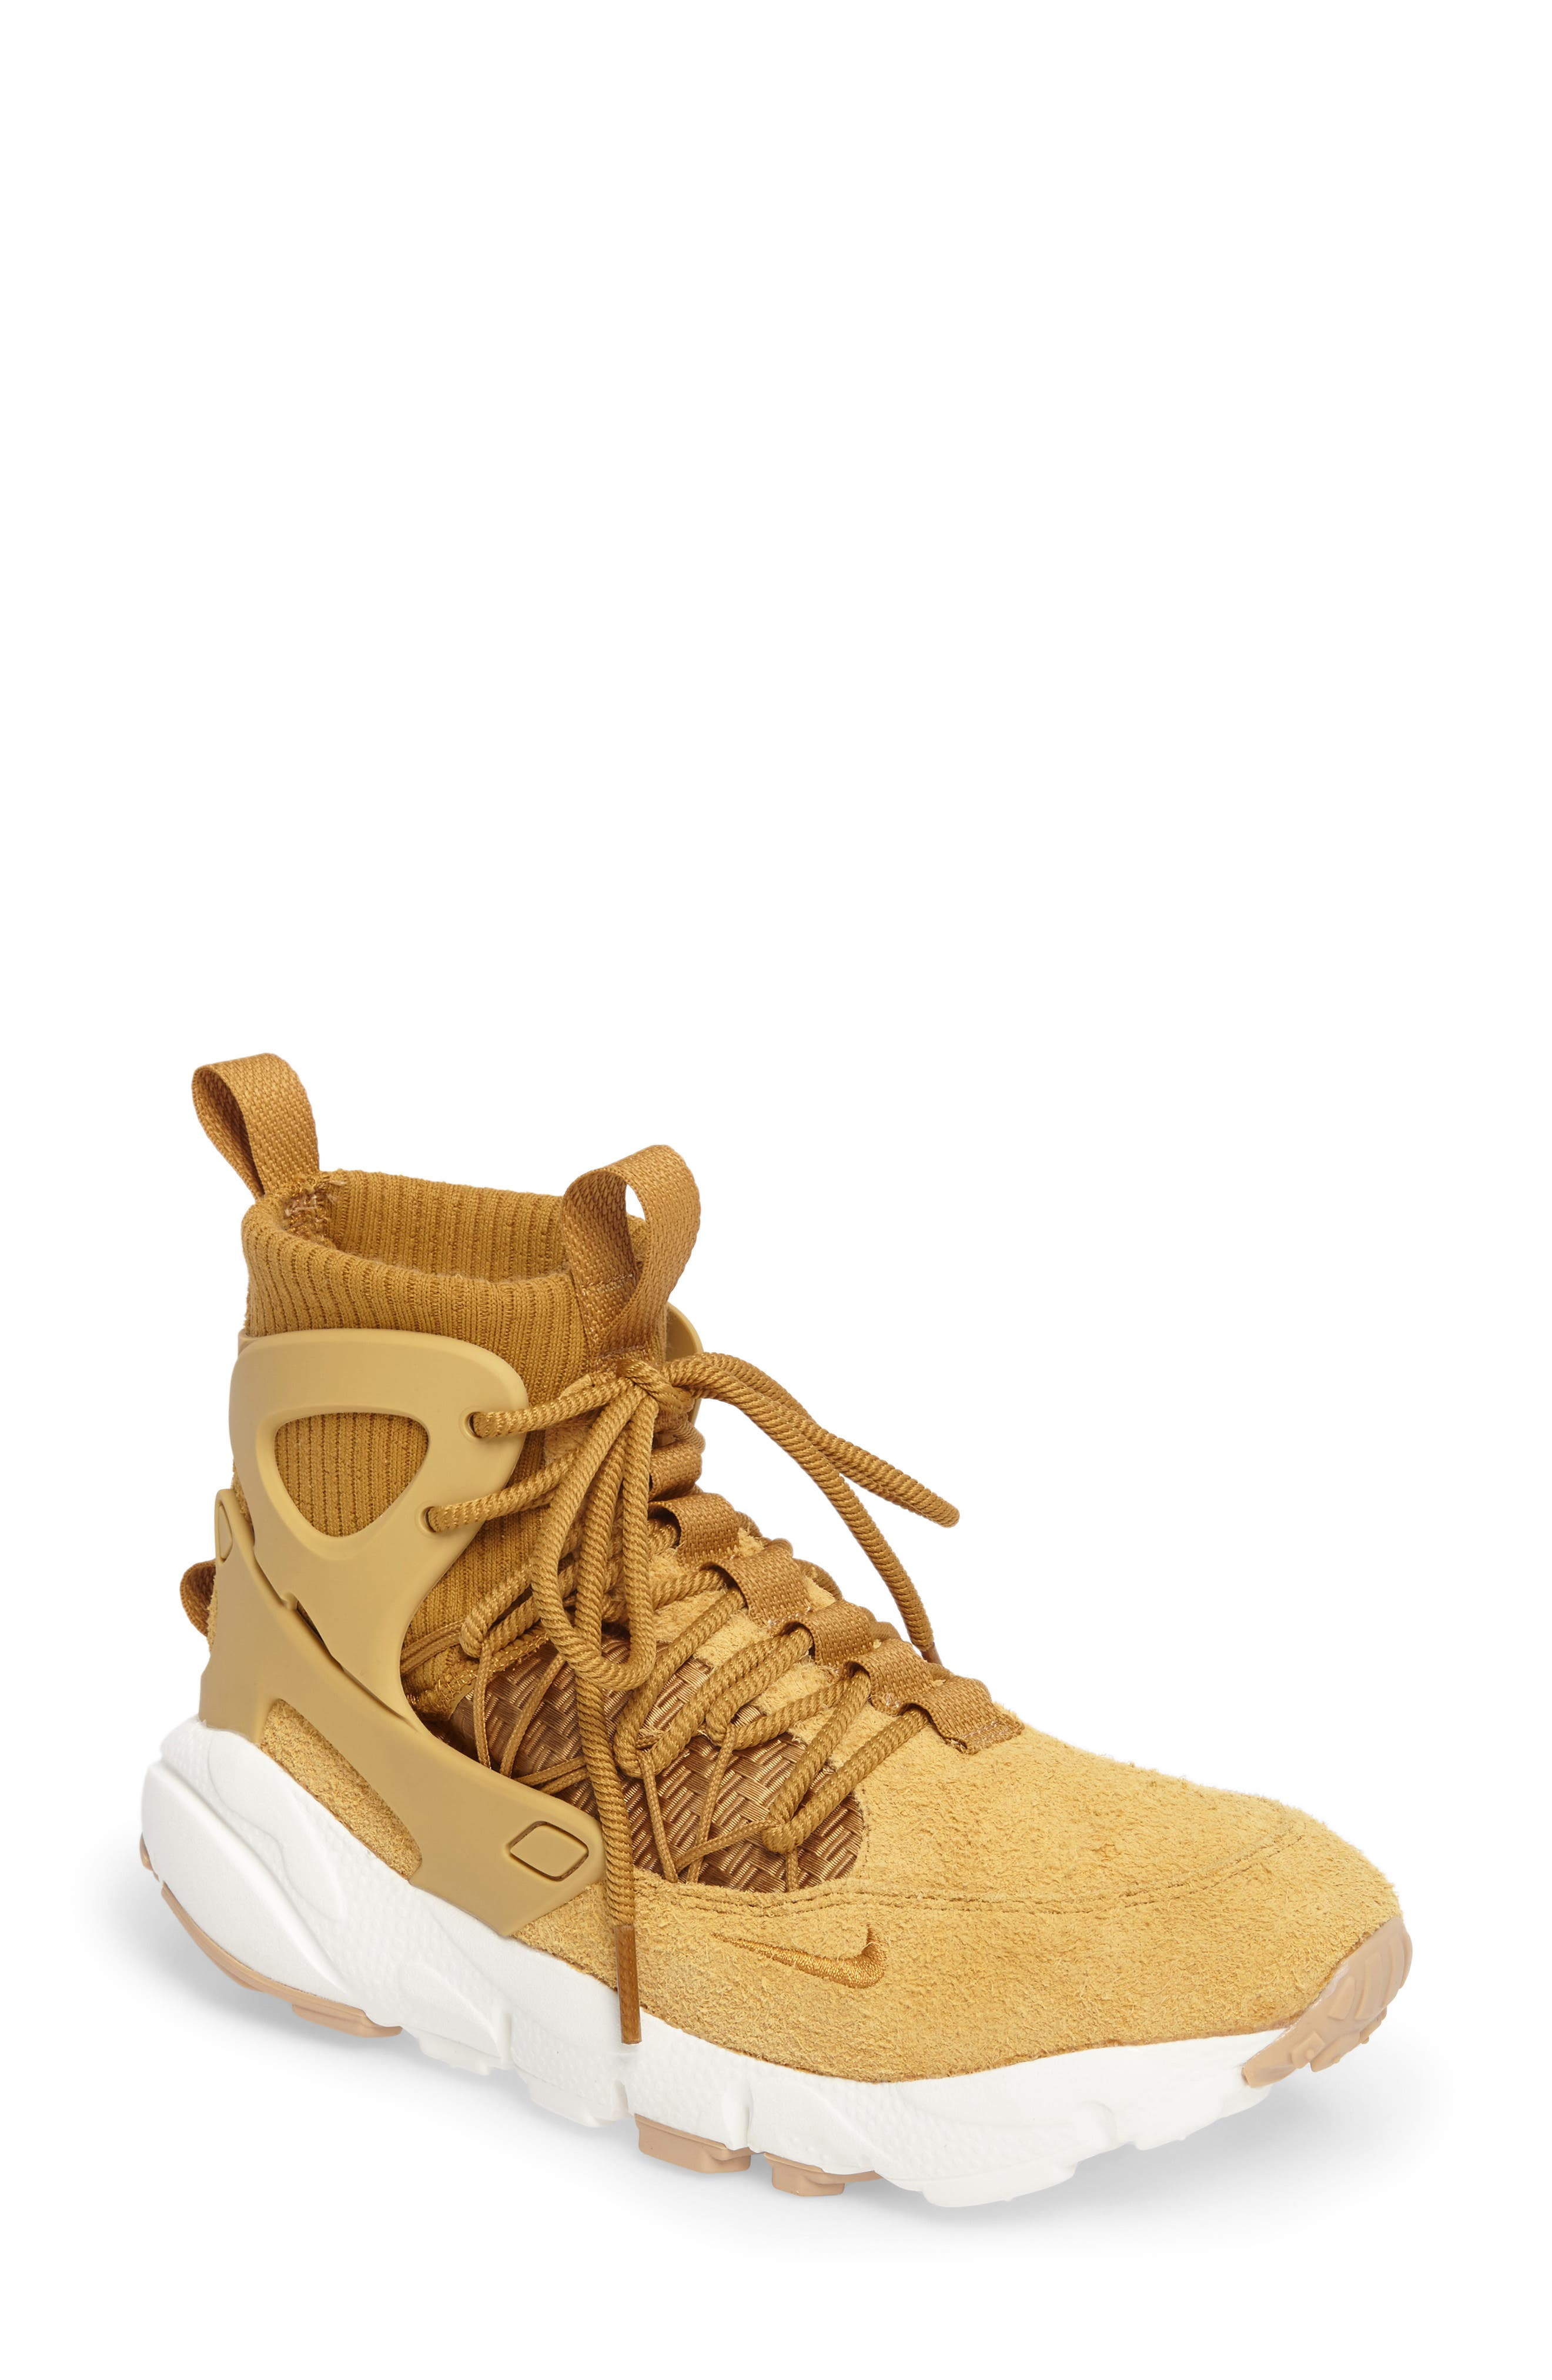 Air Footscape Mid Sneaker Boot,                             Main thumbnail 1, color,                             250